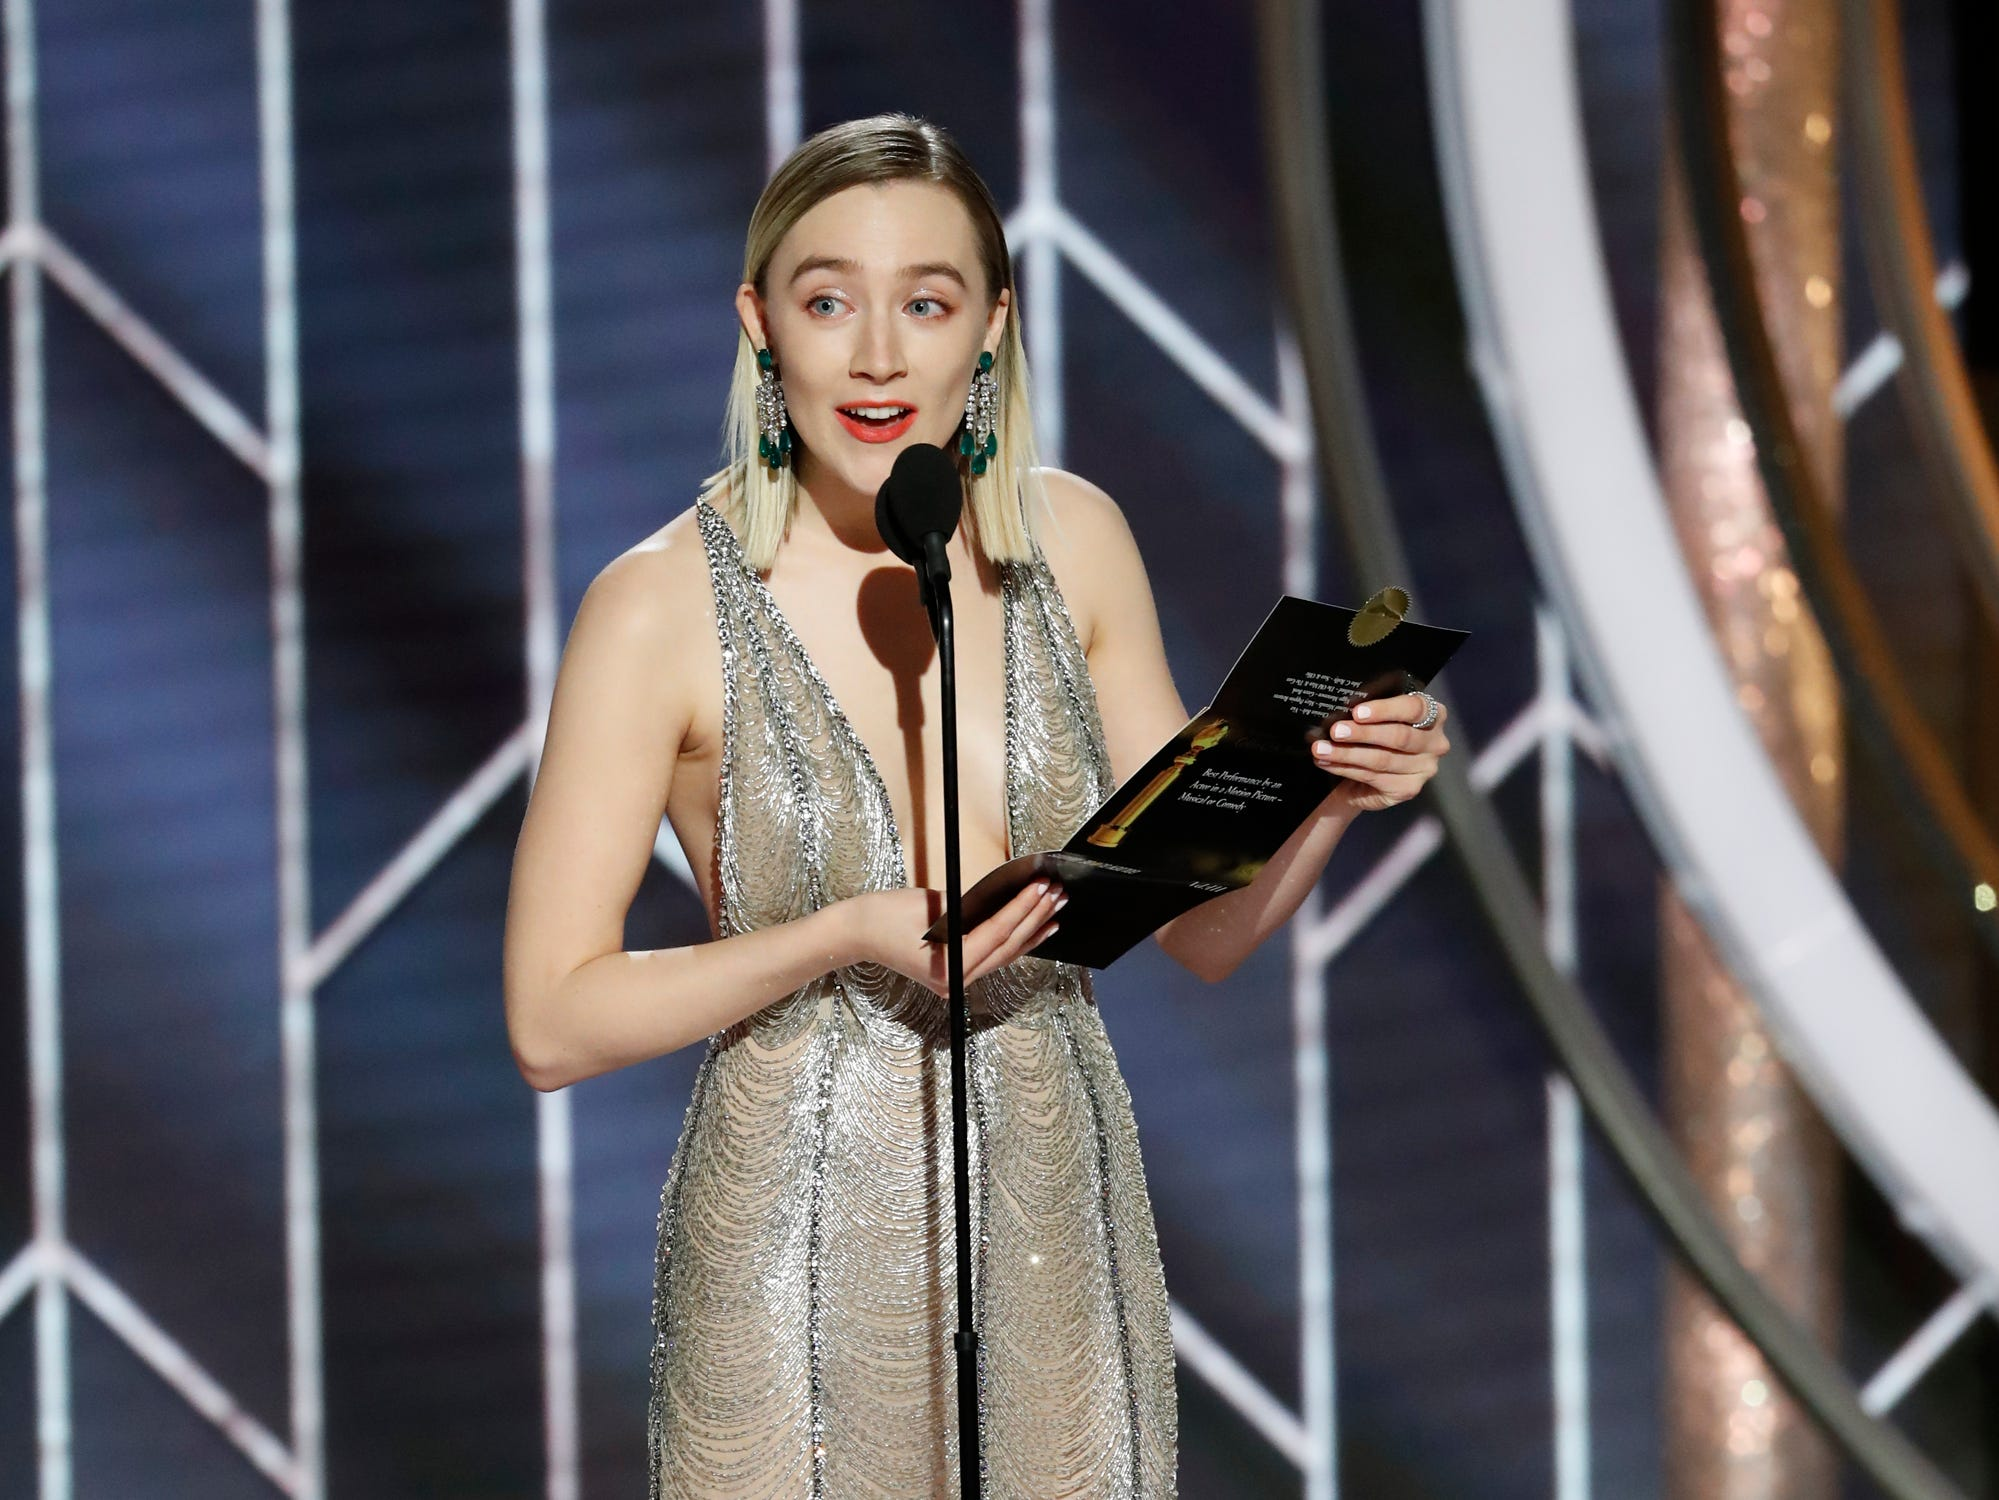 This image released by NBC shows presenter Saoirse Ronan during the 76th Annual Golden Globe Awards at the Beverly Hilton Hotel.